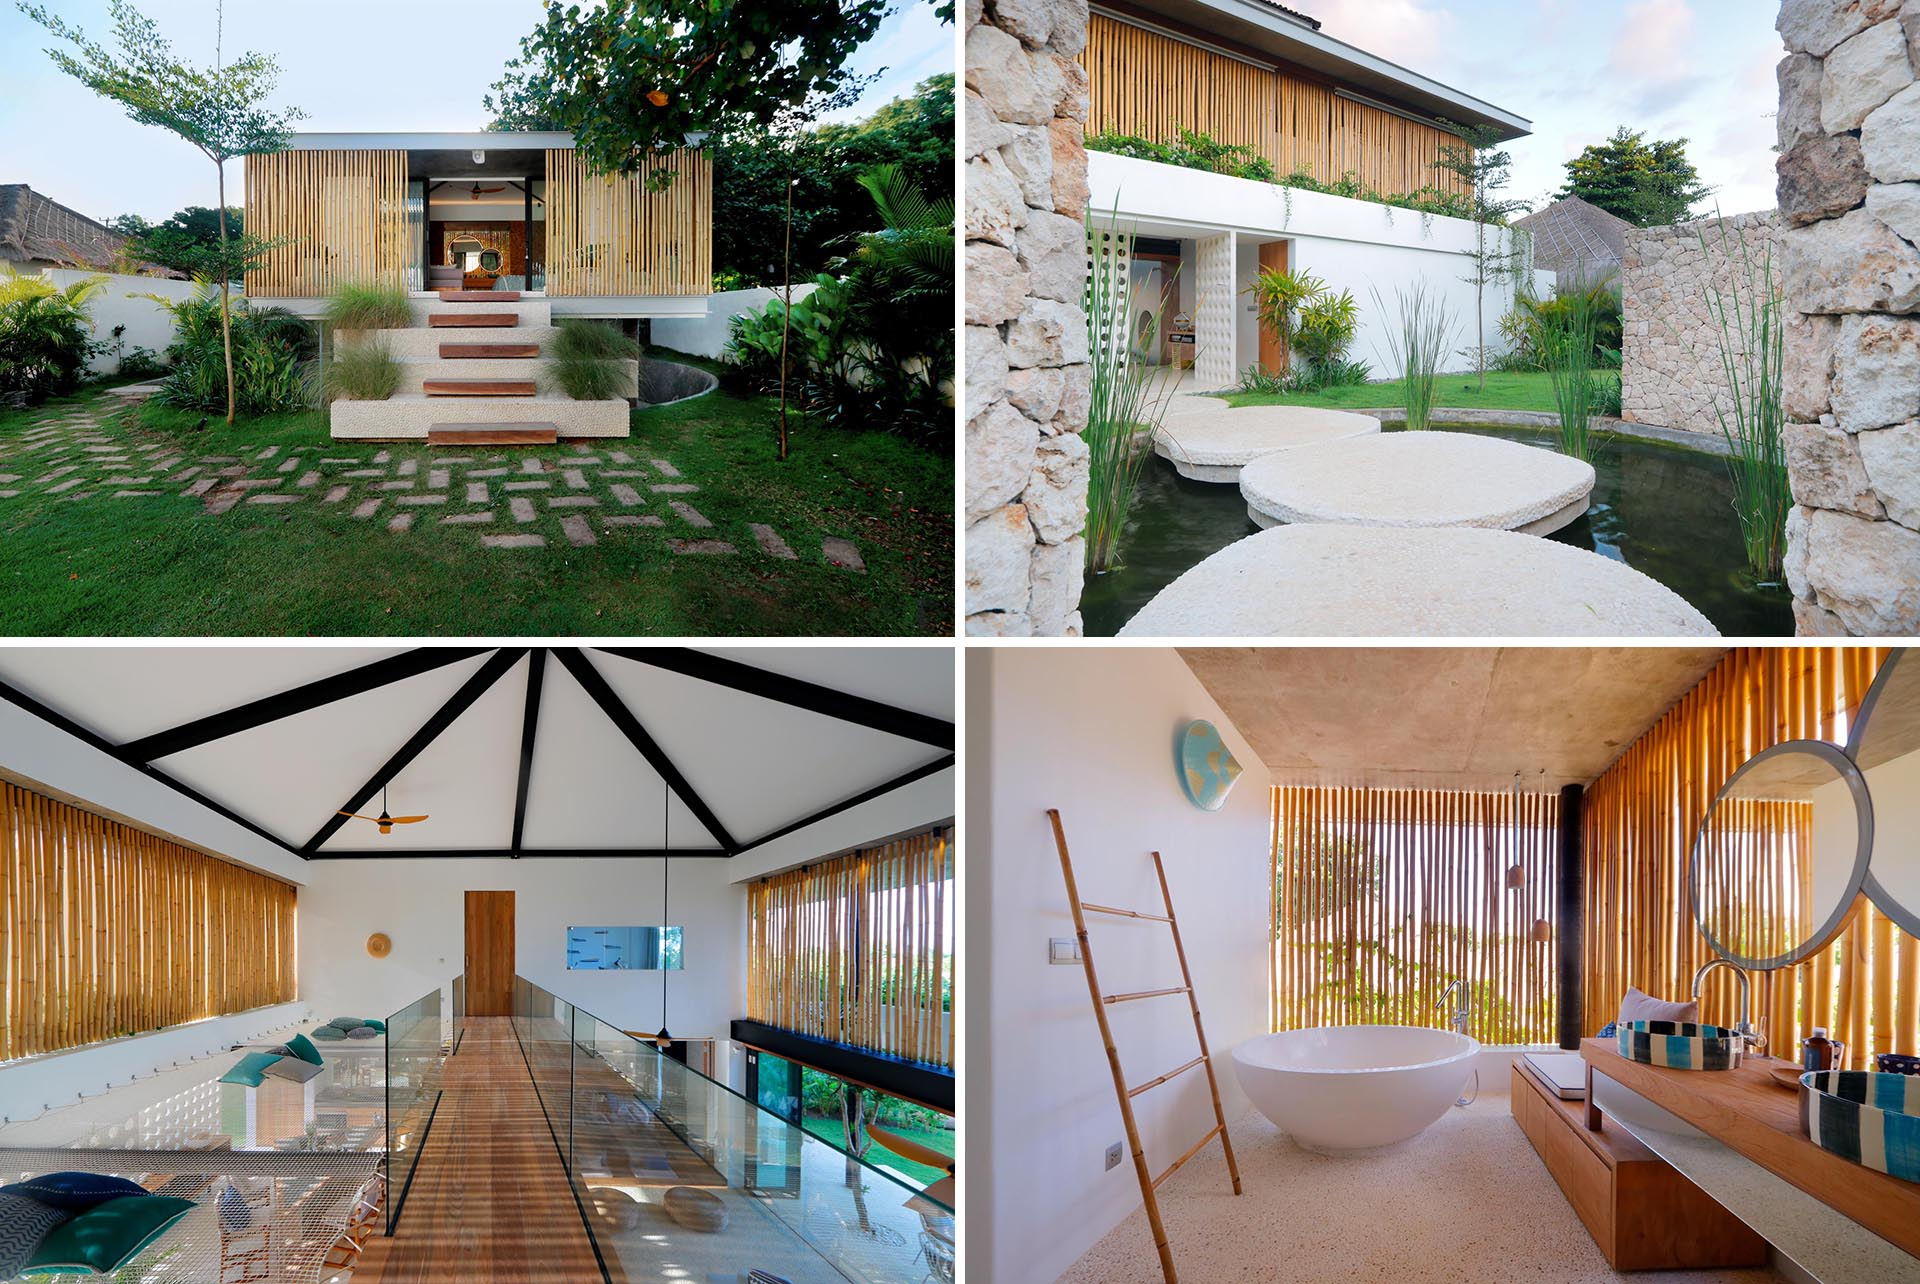 A modern beach home with a a white exterior and interior, includes bamboo screens for privacy and shade.